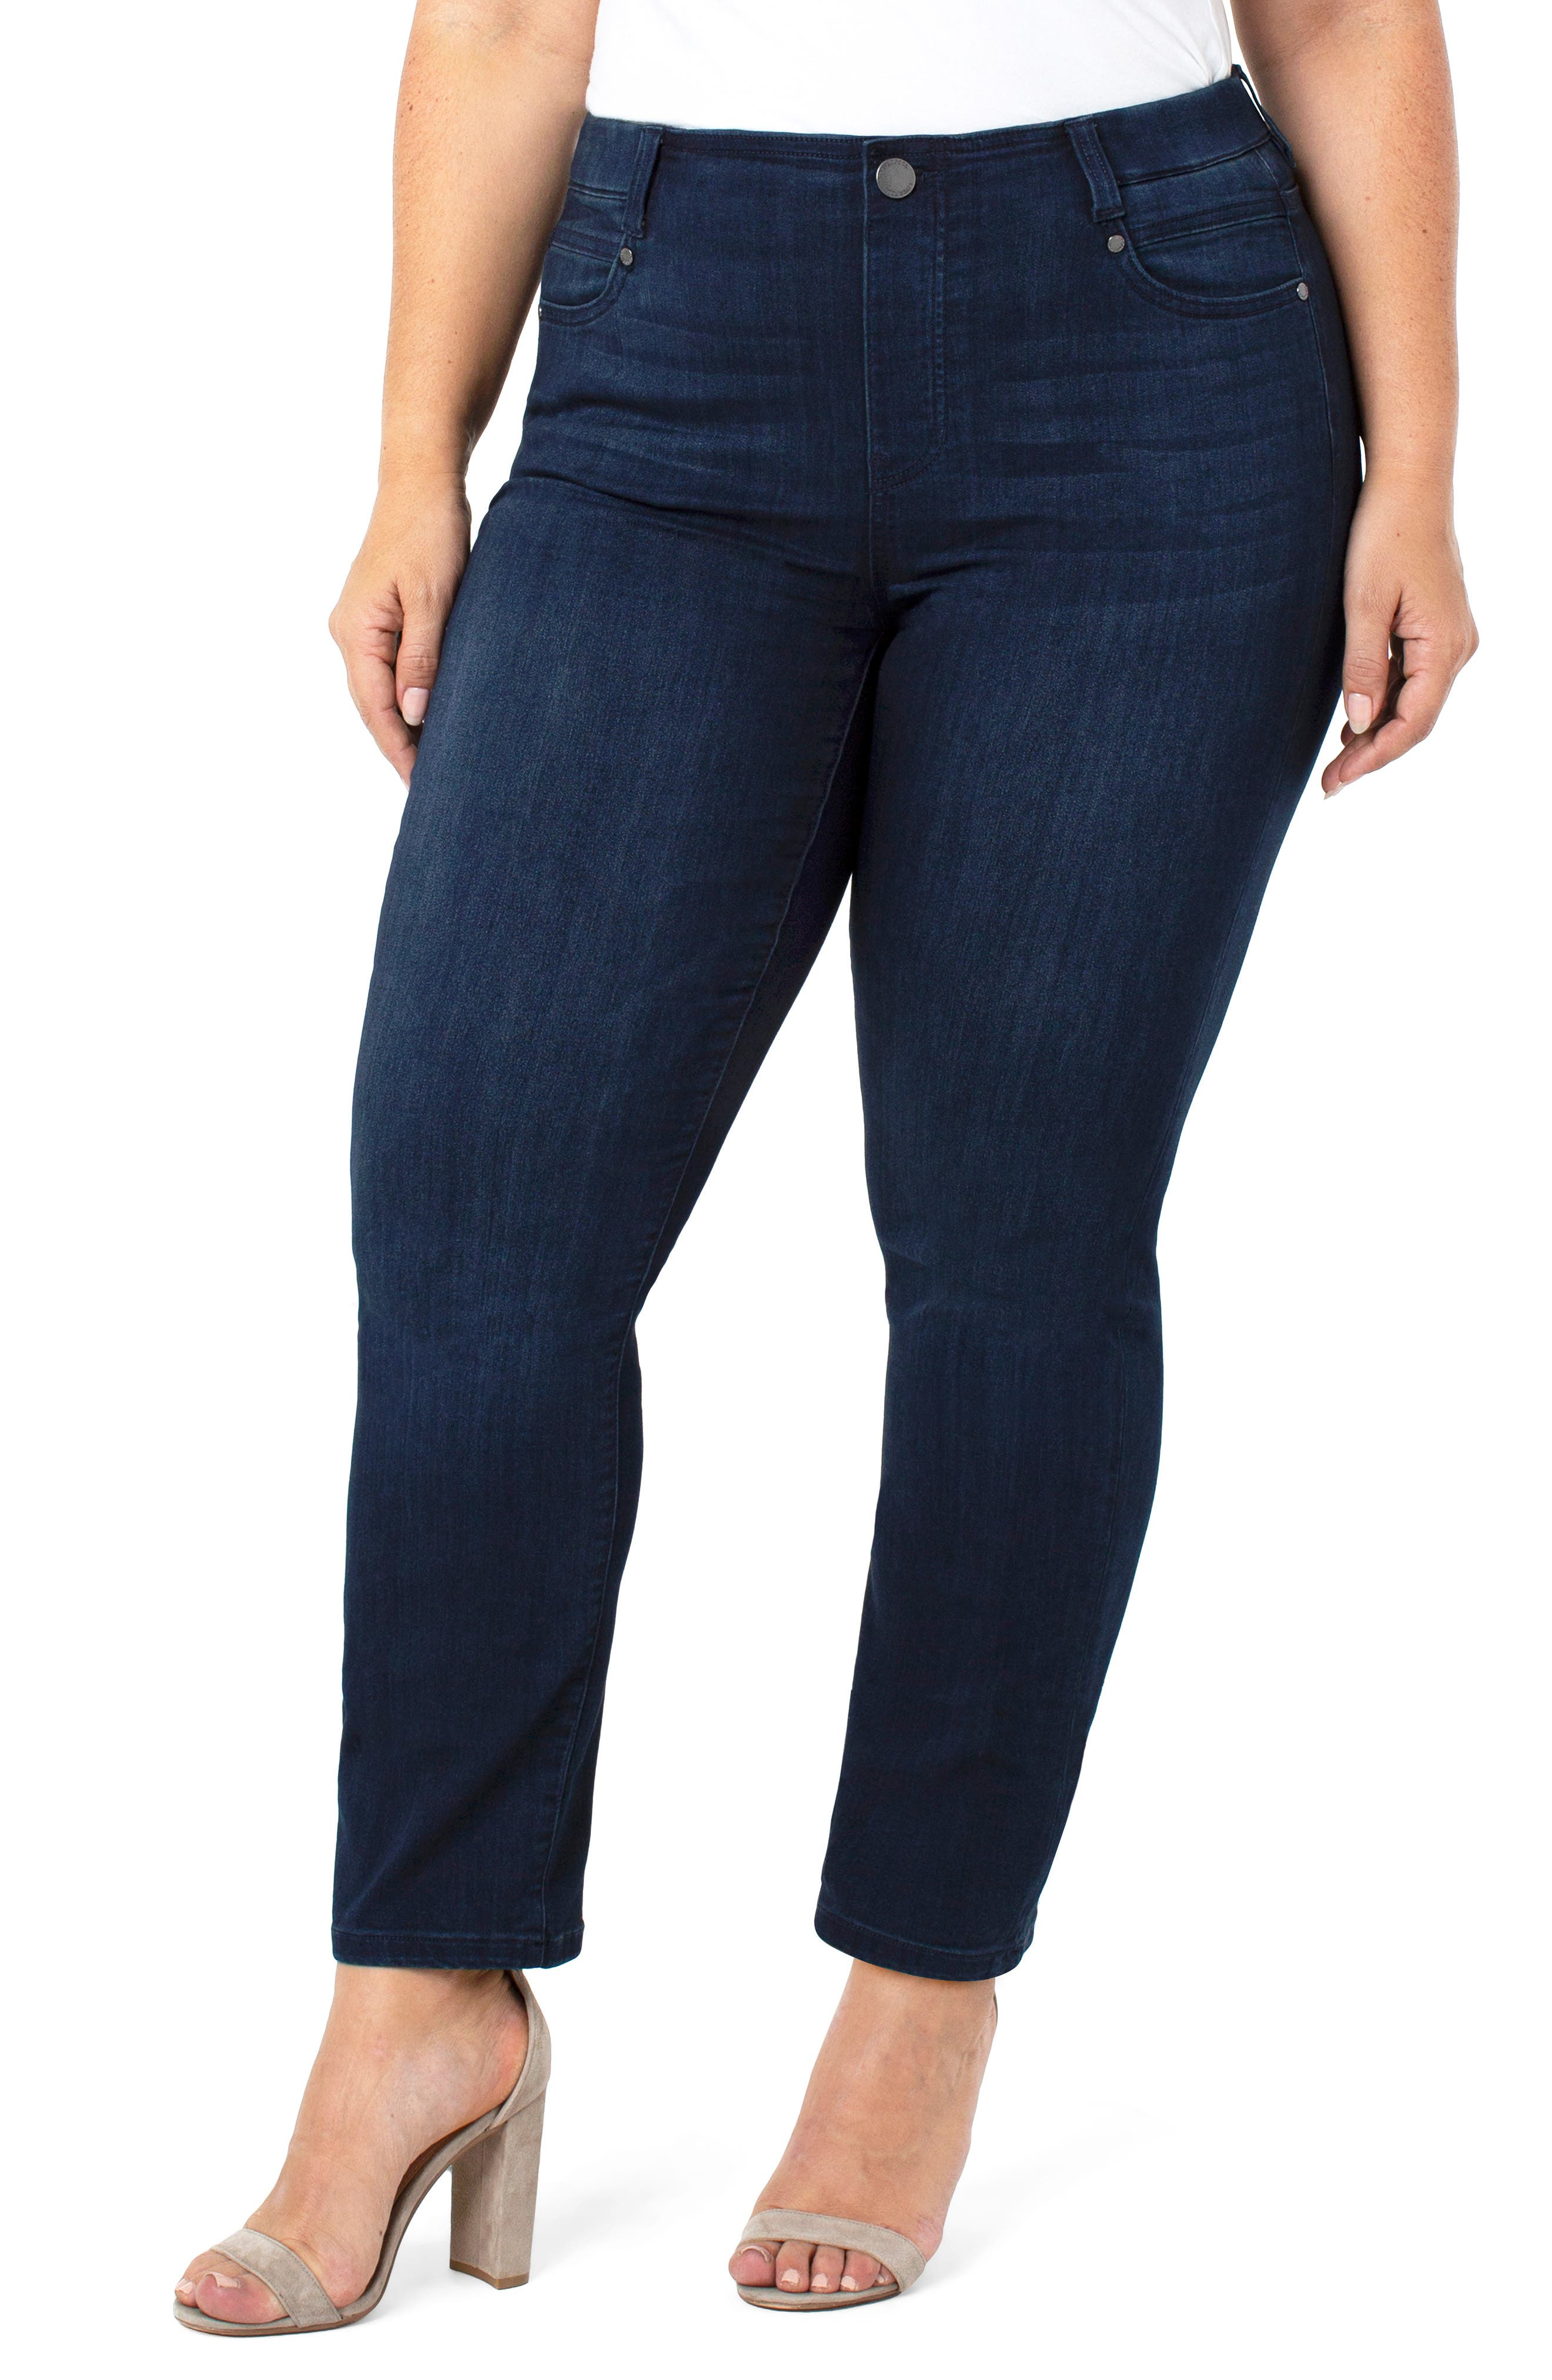 Gia Glider Pull-On Slim Jeans